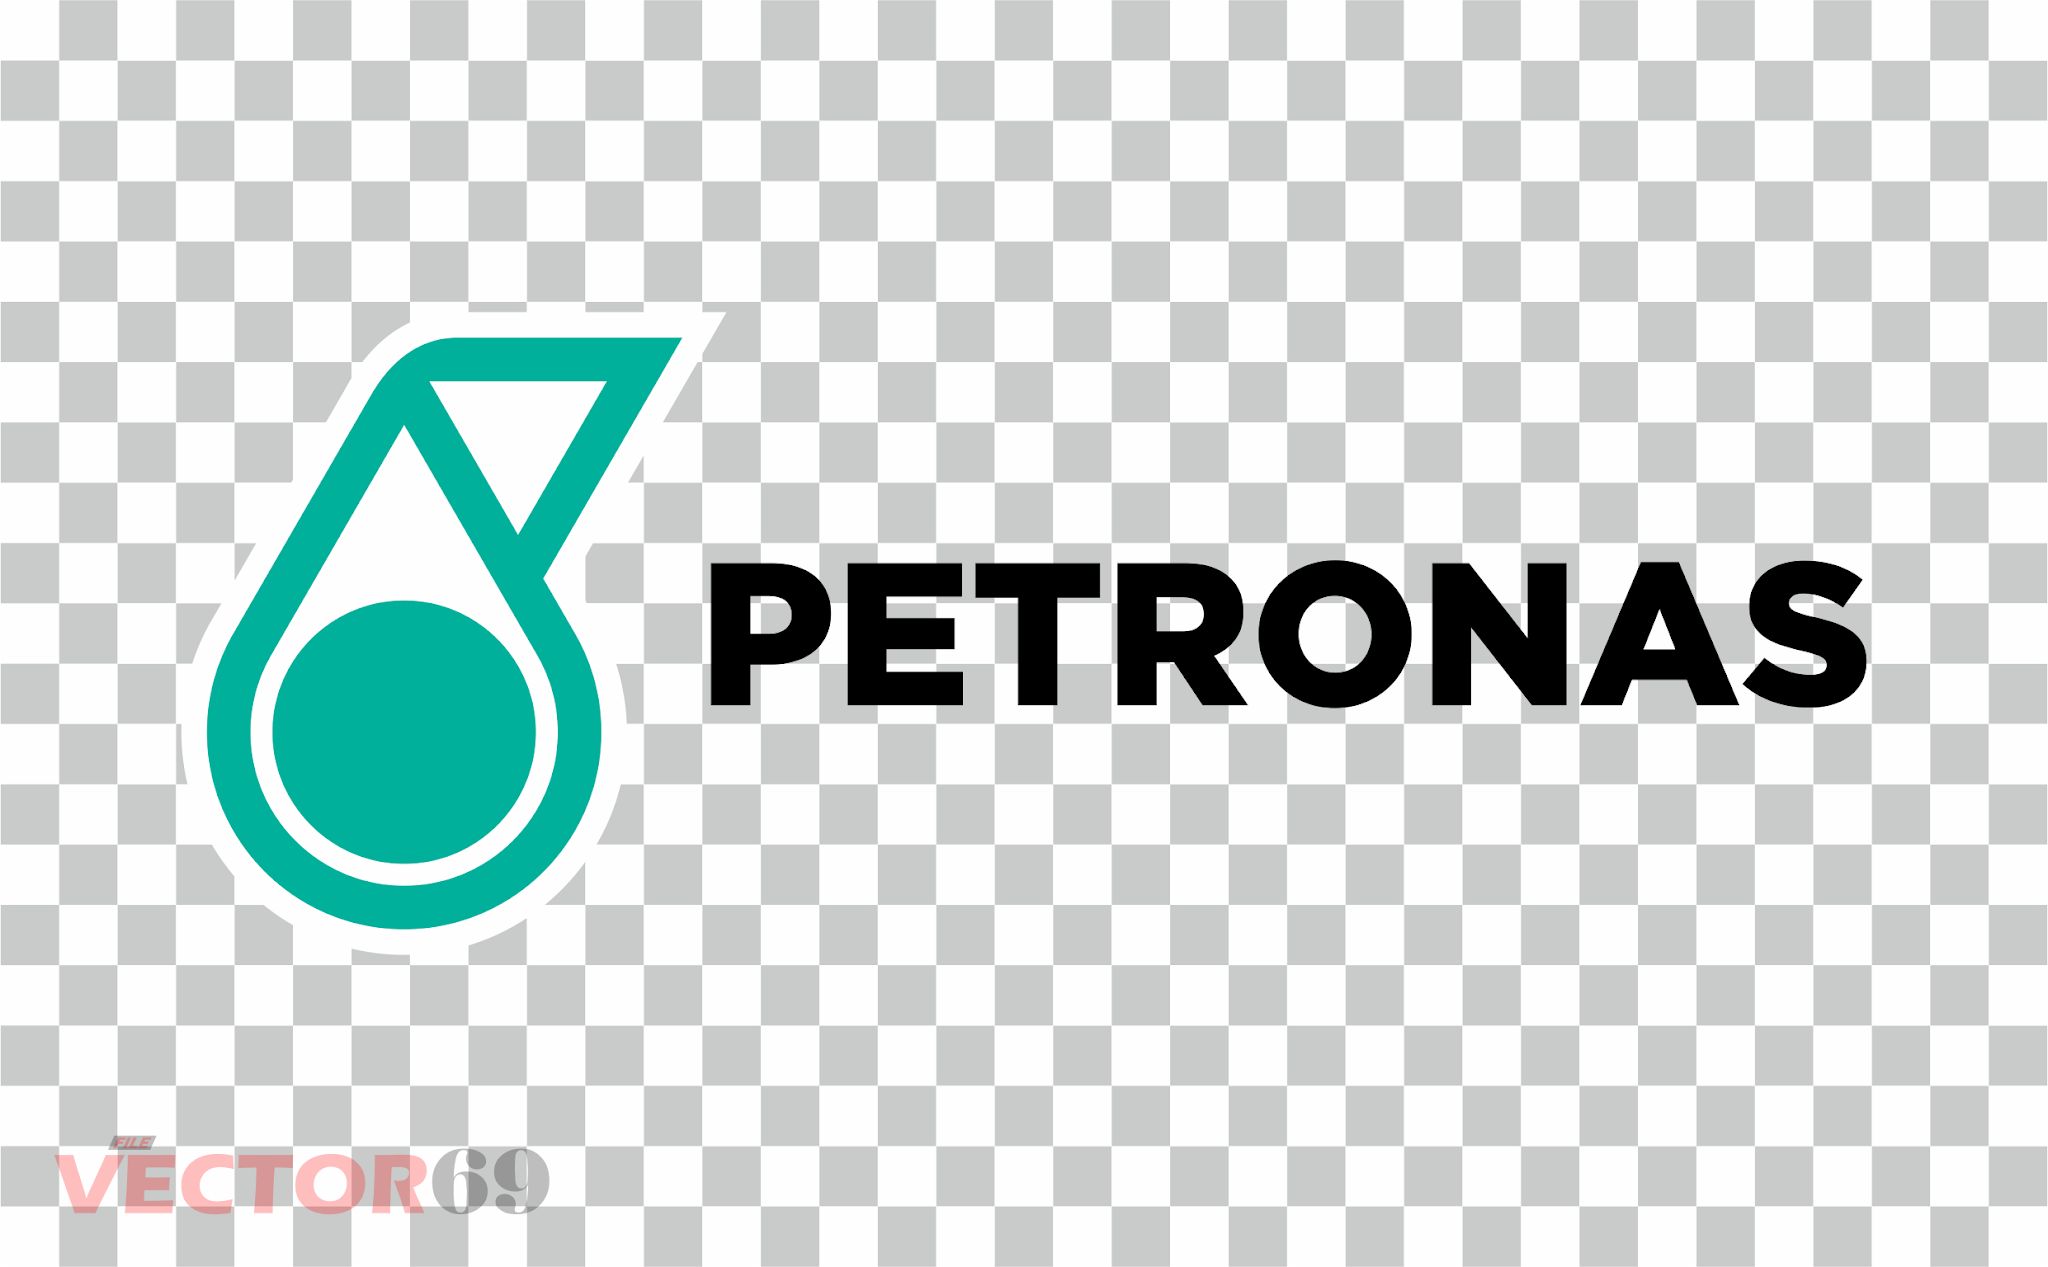 Petronas Logo - Download Vector File PNG (Portable Network Graphics)